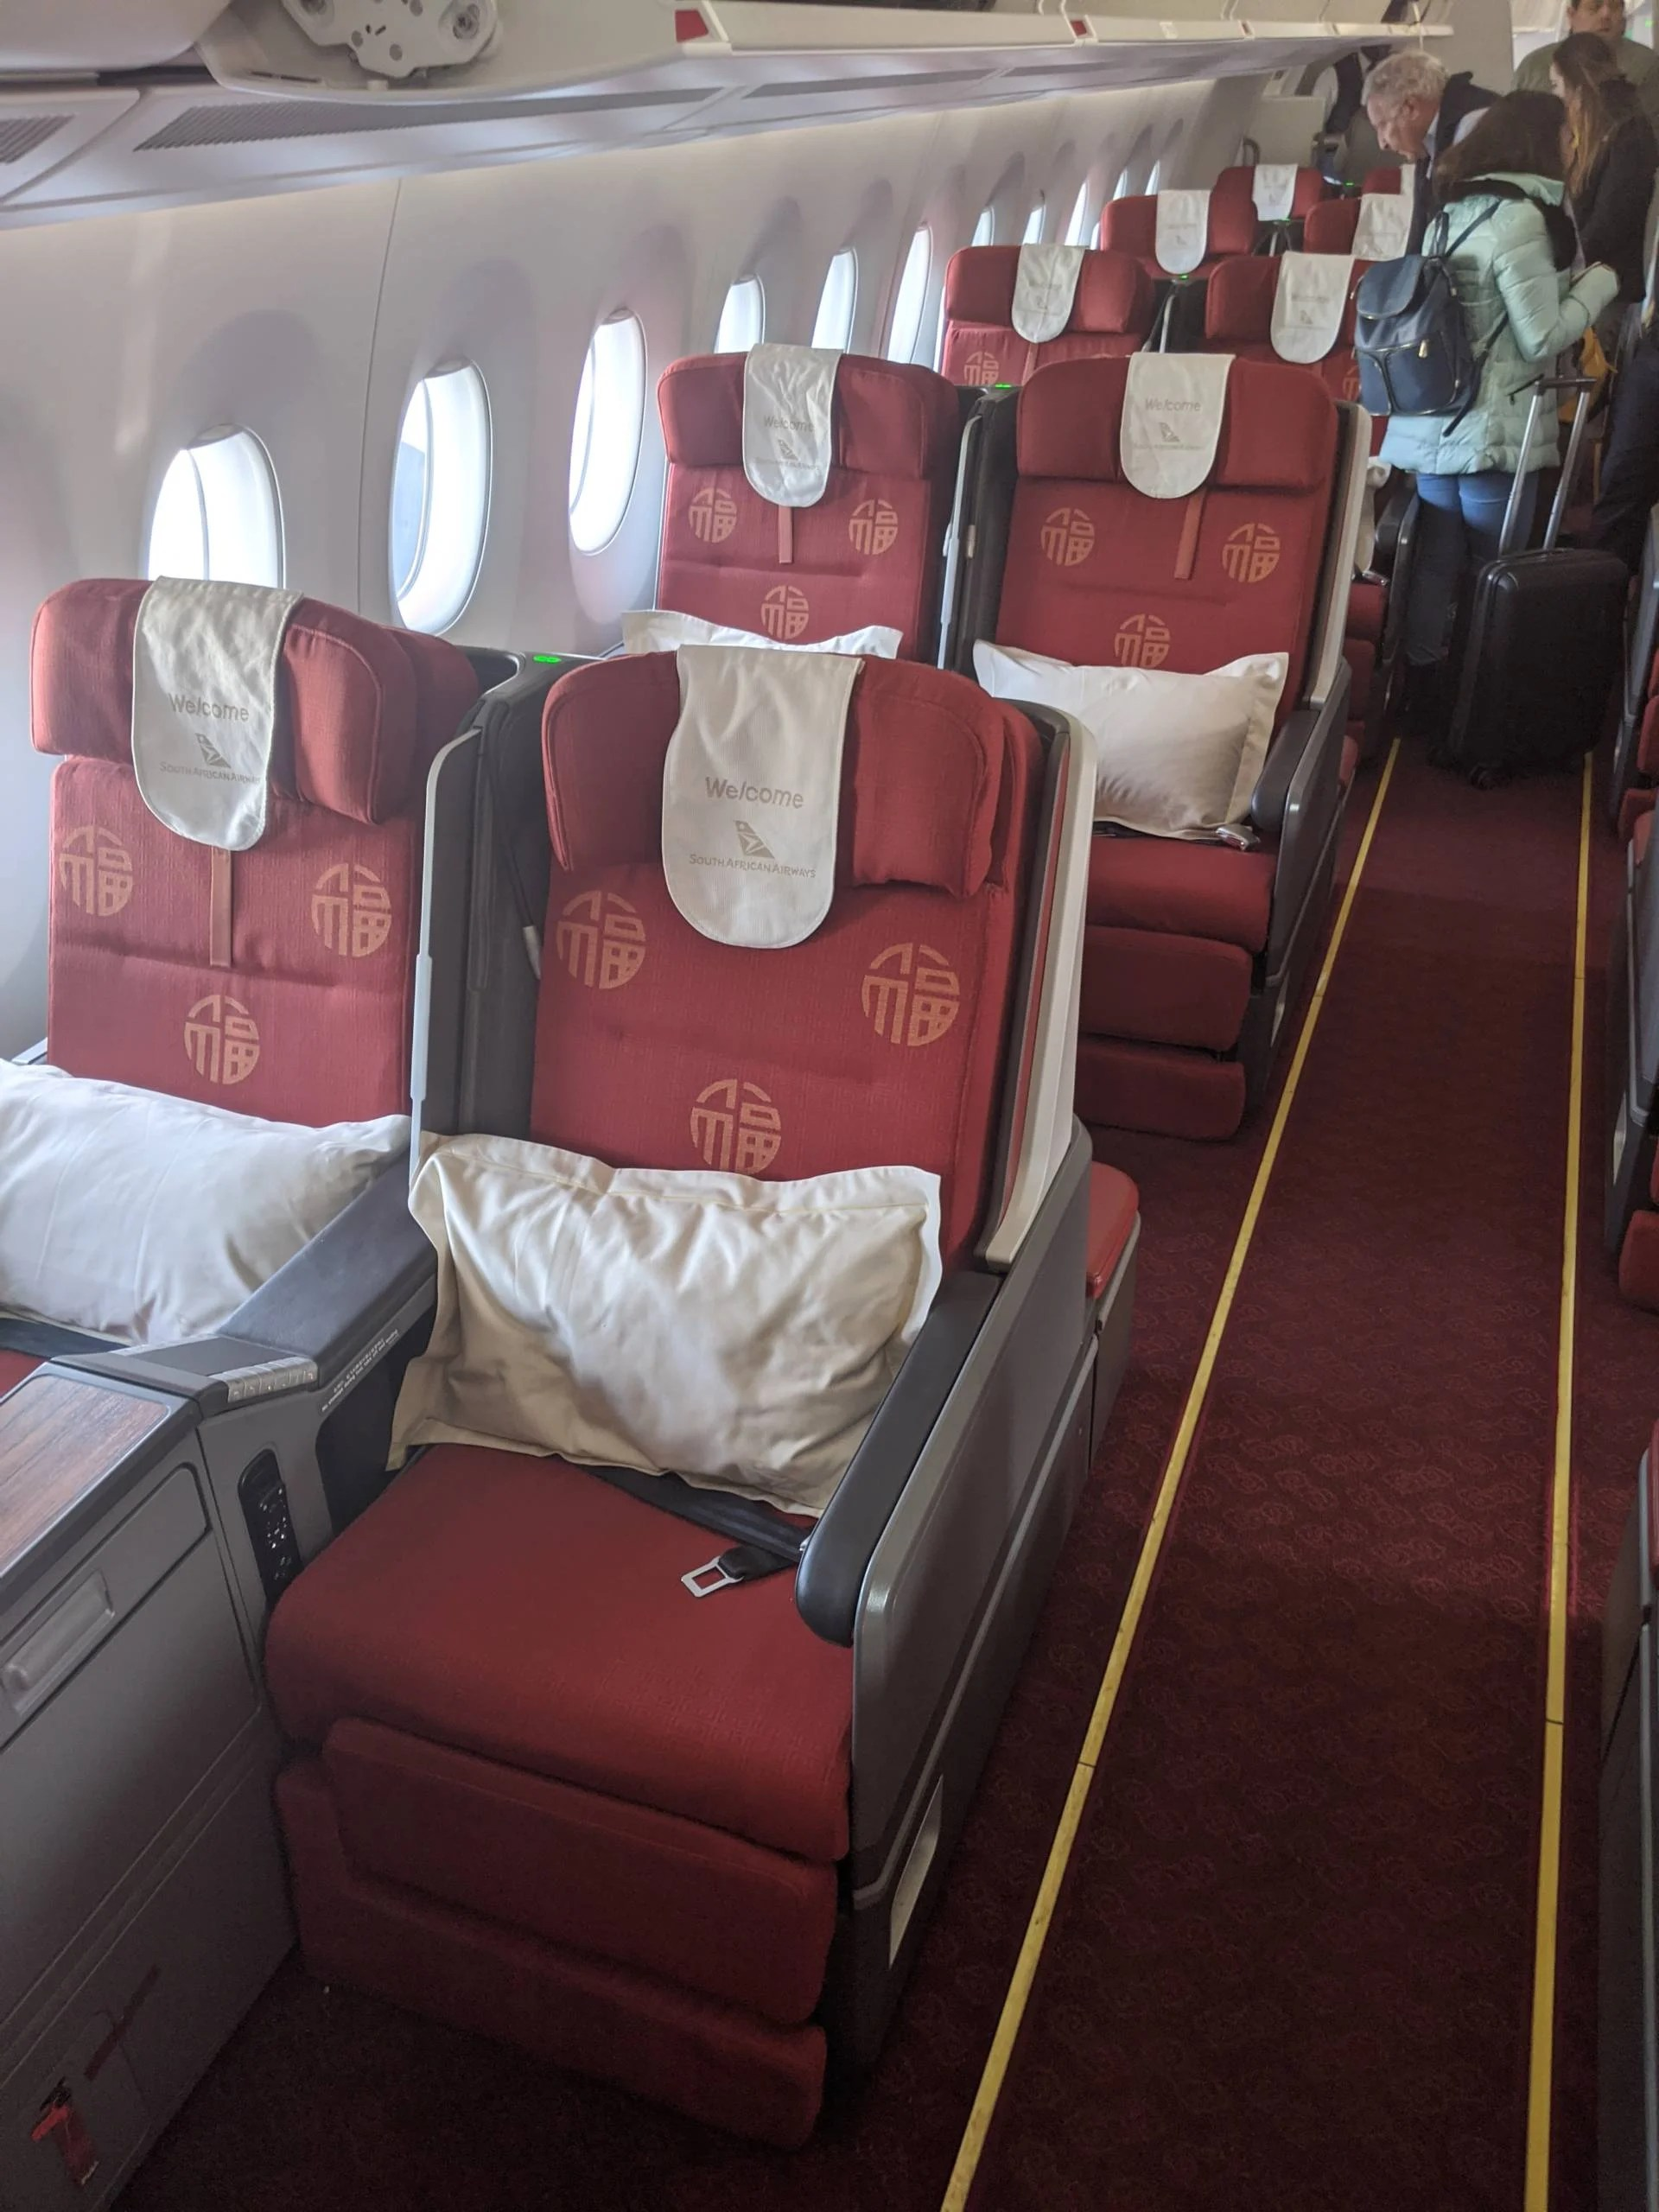 Where's the menu? A review of South African Airways biz class on the A350, New York to Johannesburg